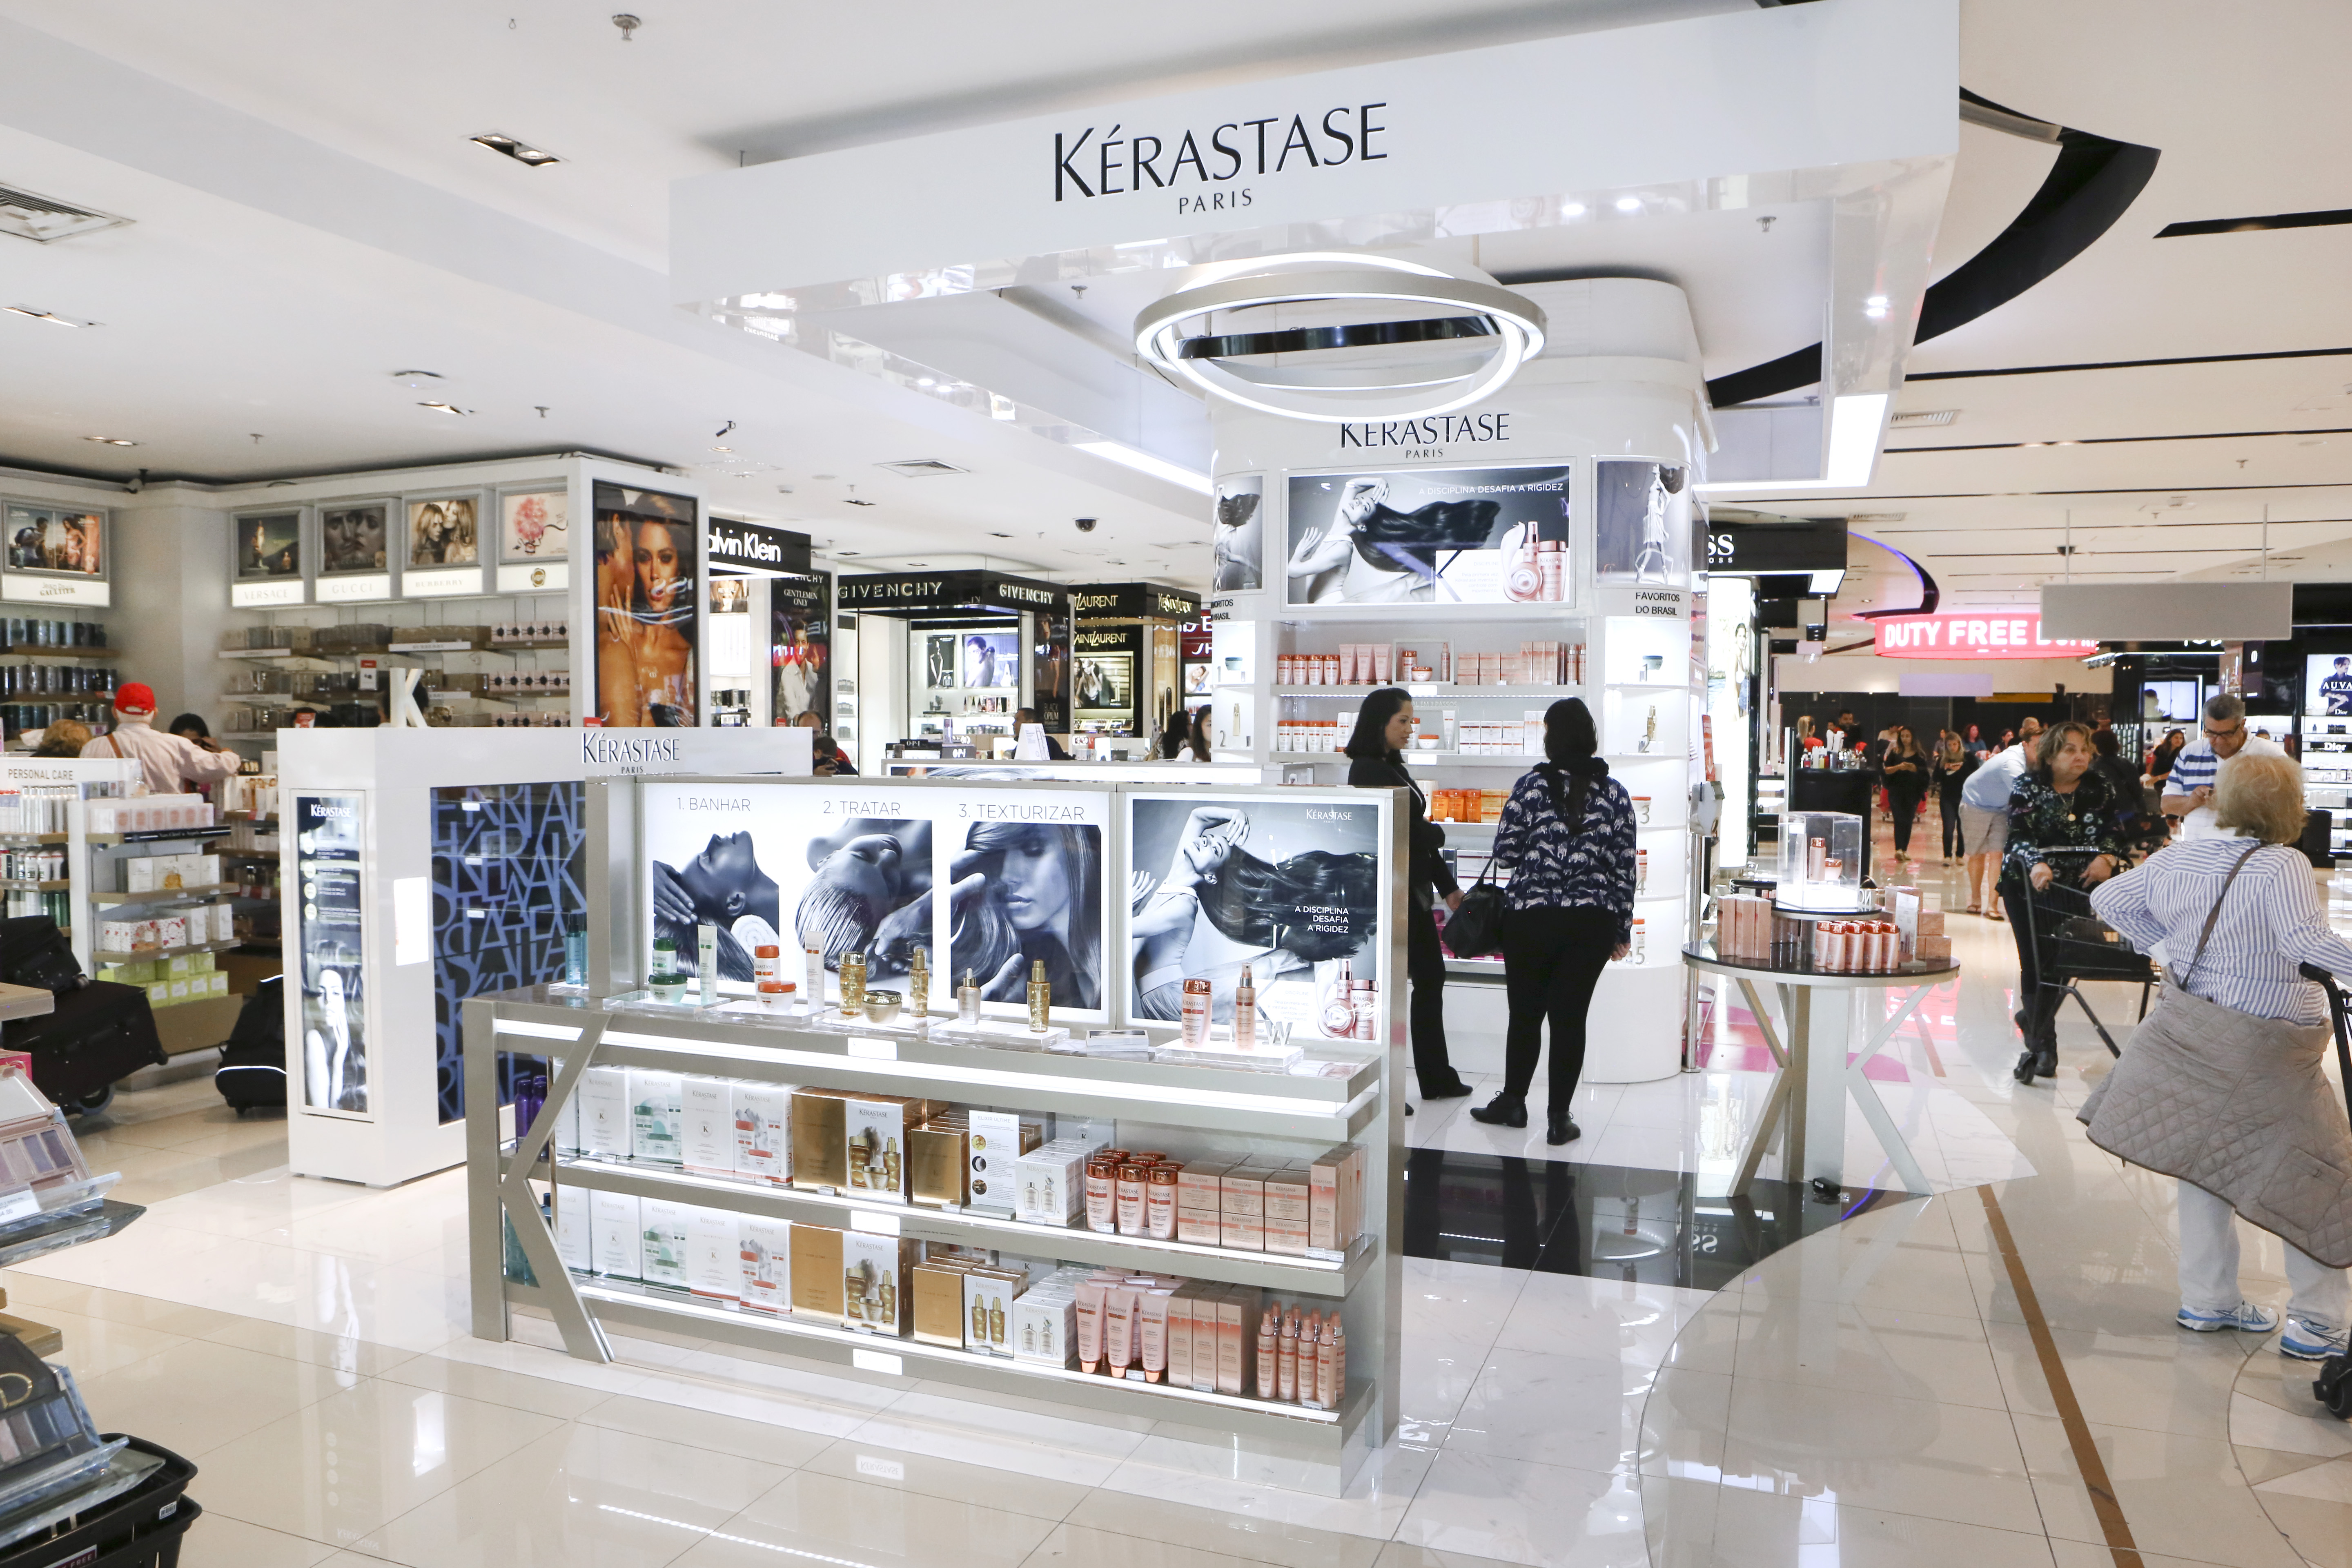 Kerastase products have been praised in top beauty mags like Glamour, People, Elle, and Latina for their ability to handle almost any common hair complaint: Protect your hair from the drying and fading effects of sun, chlorine, and salt with the Kerastase Soleil line .